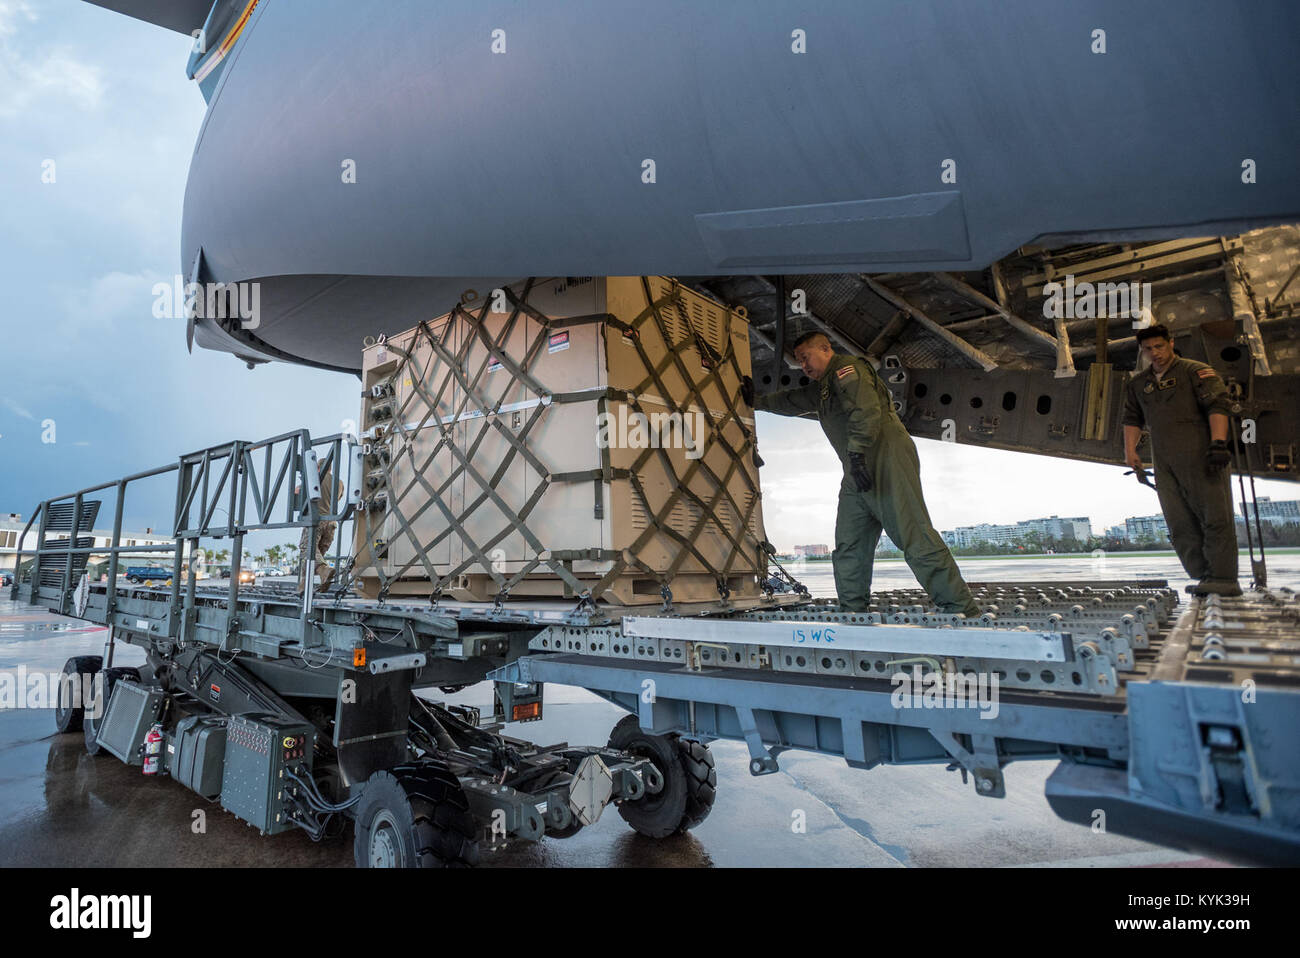 Loadmasters from the Hawaii Air National Guard dowload relief supplies from their C-17 aircraft at Luis Muñoz Marín Stock Photo